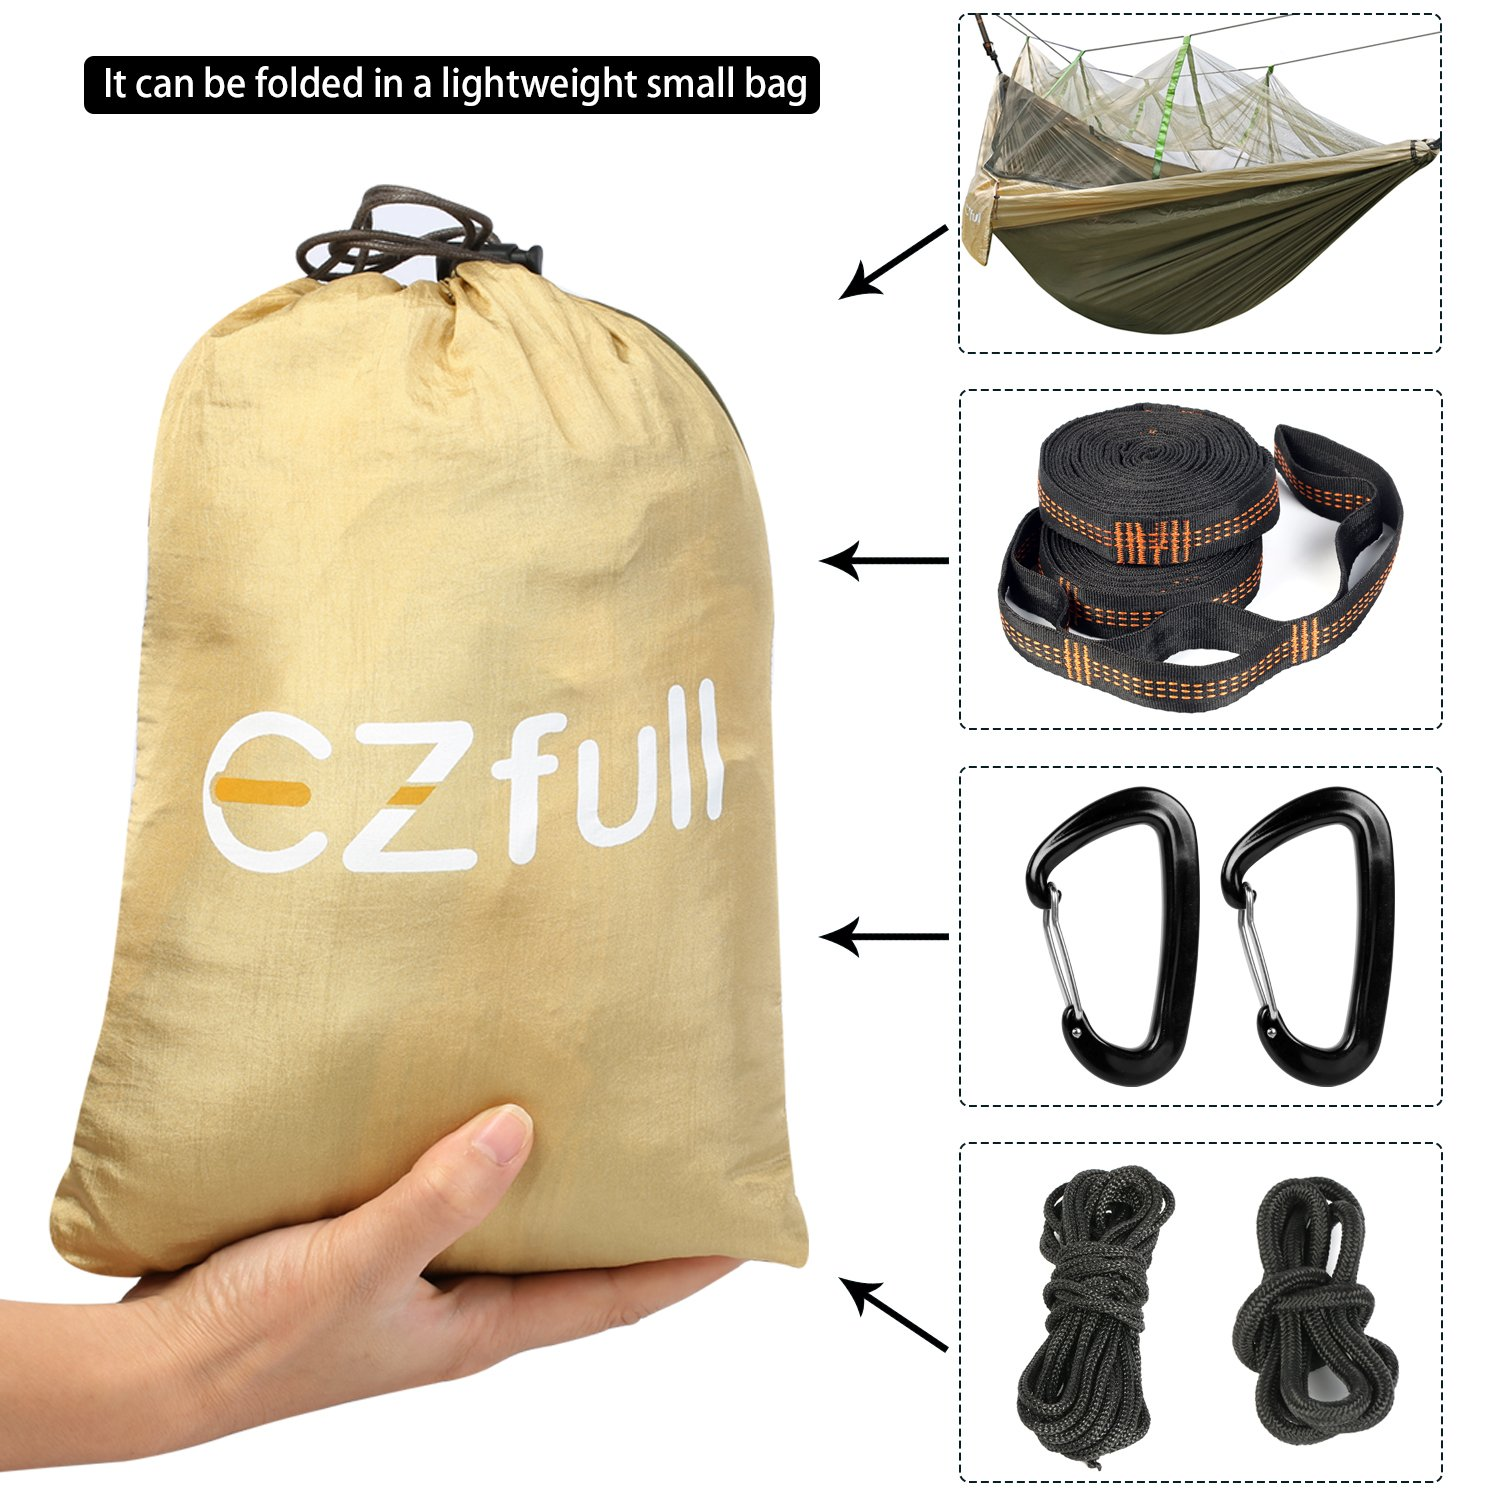 L W EZfull Double Camping Hammock with Mosquito Net 660LBS Bearing Portable Outdoor Hammocks,10ft Hammock Tree Straps /& 12KN Carabiners for Backpacking Camping Travel Beach Yard 118 x 78